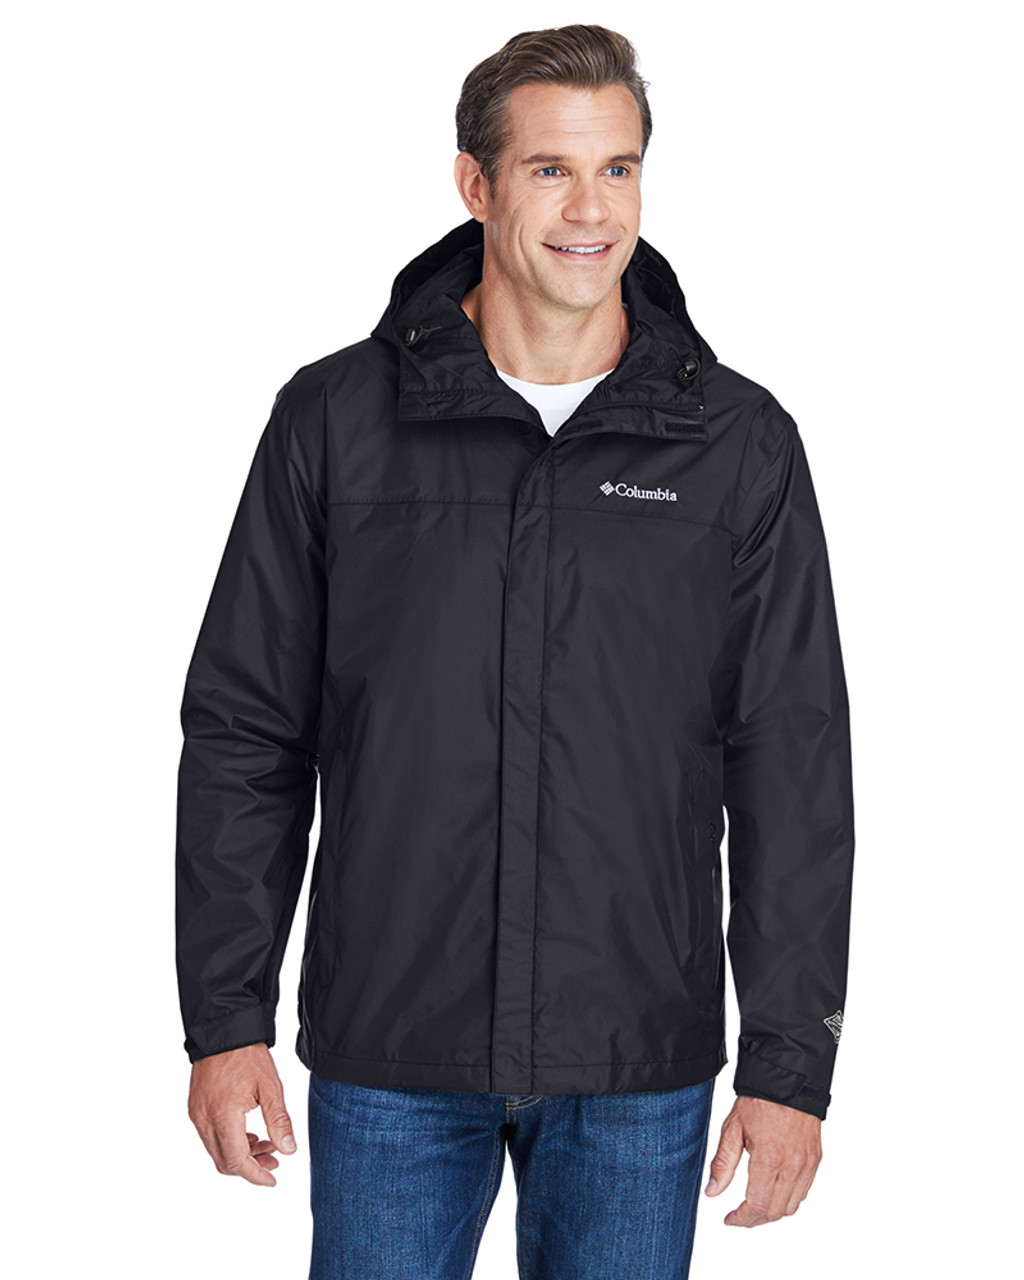 c70136900 2433 Columbia Men's Watertight™ II Jacket